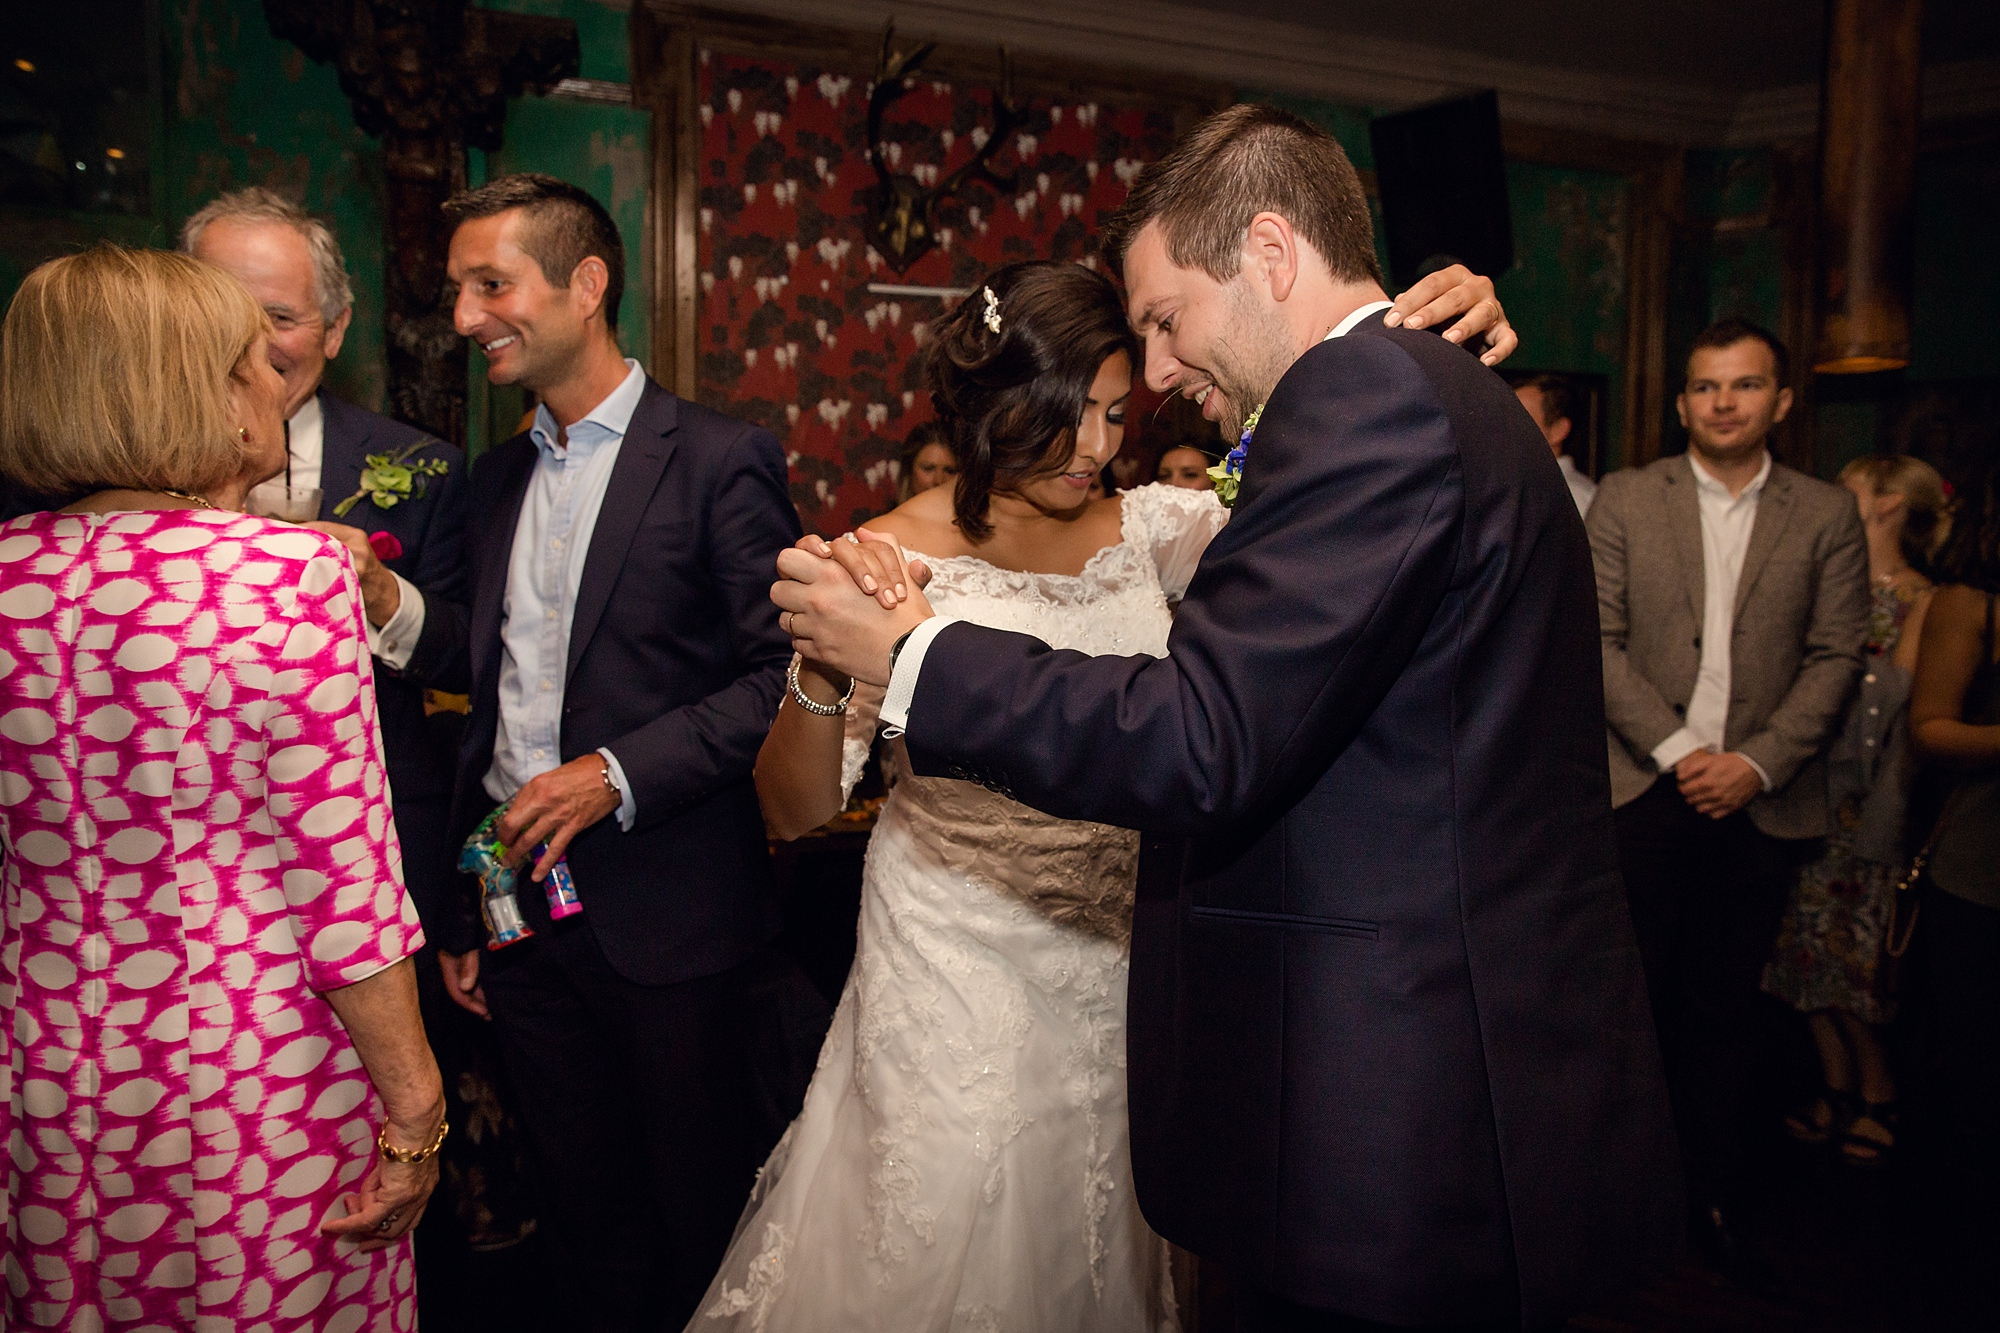 Paradise by way of Kensal Green wedding bride and groom dance